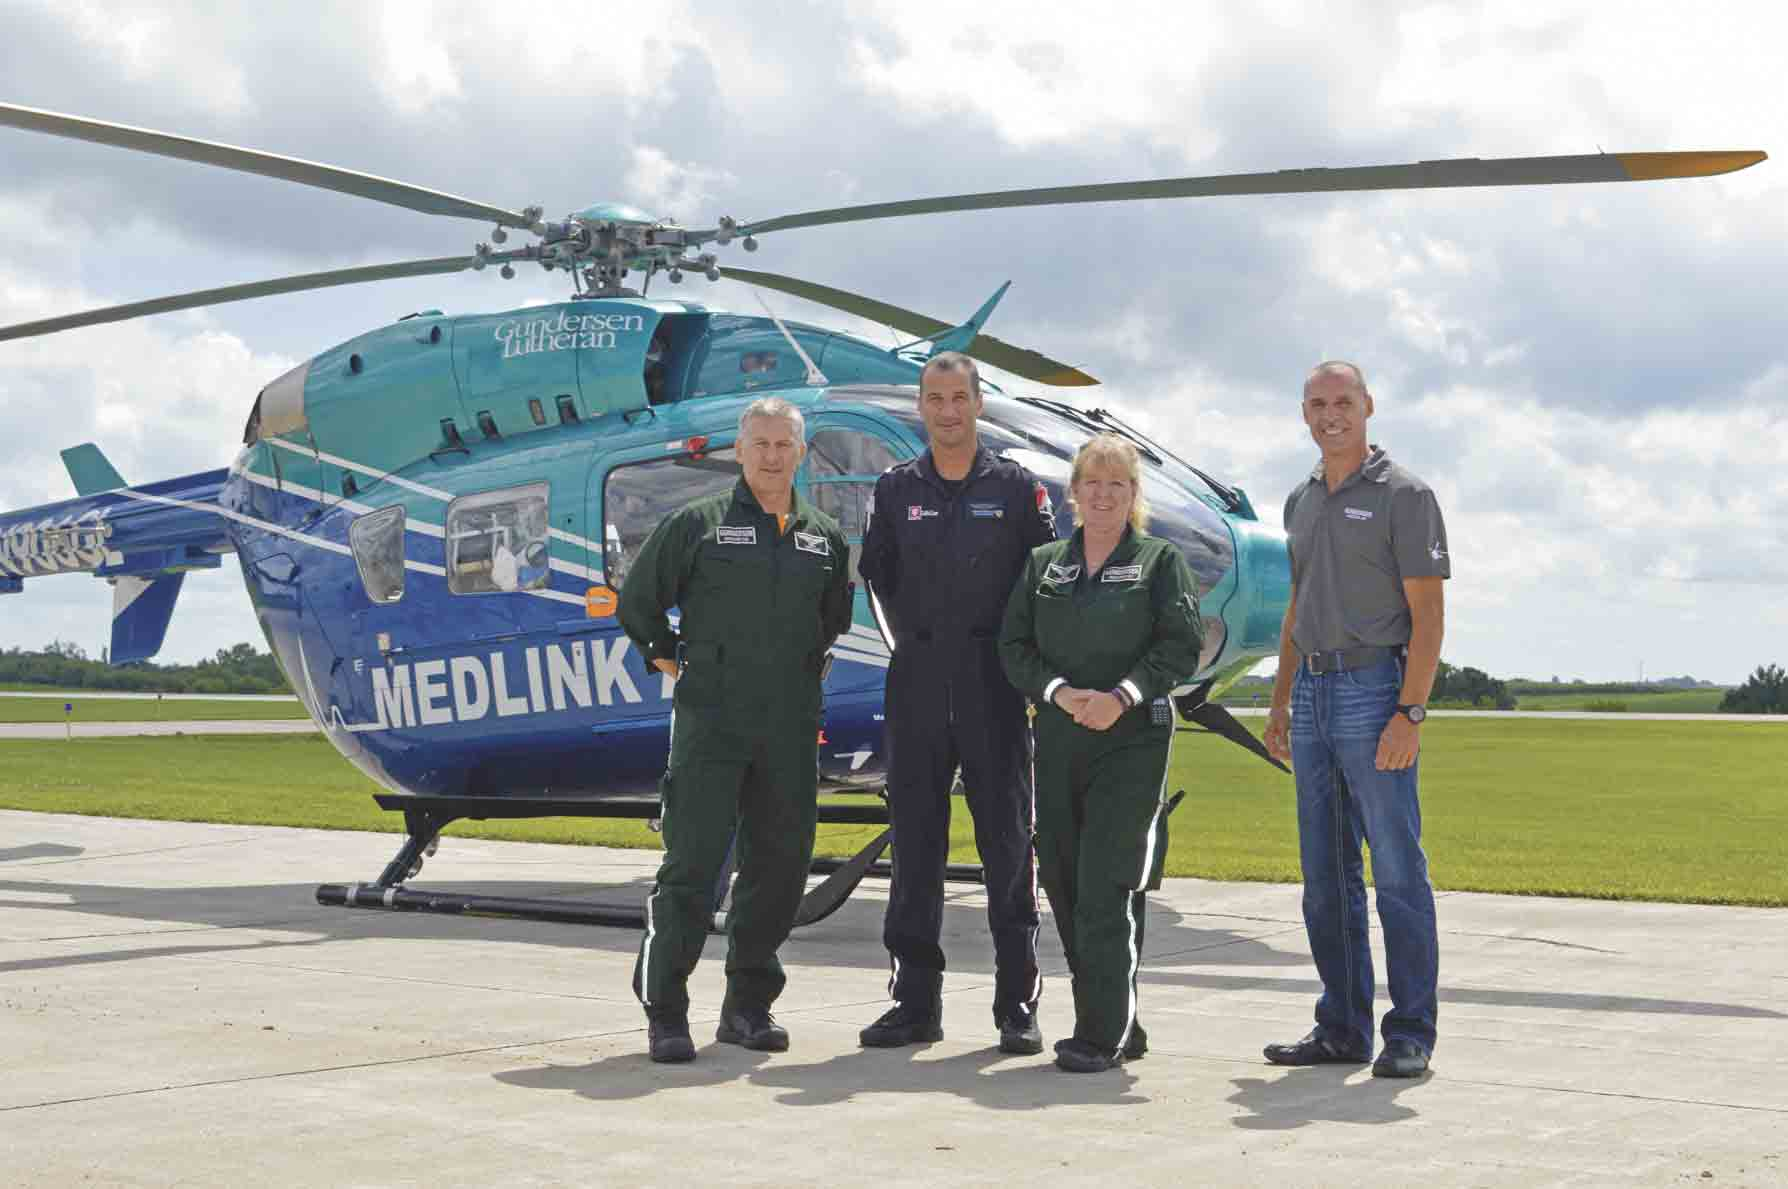 MedLink AIR, which is the emergency medical helicopter for Gundersen Health Systems, is currently experimenting with a trial run of basing one of its two helicopters in Decorah. With a full flight staff that has accumulated over 130 combined years of experience, on-shift flight nurse Terry...